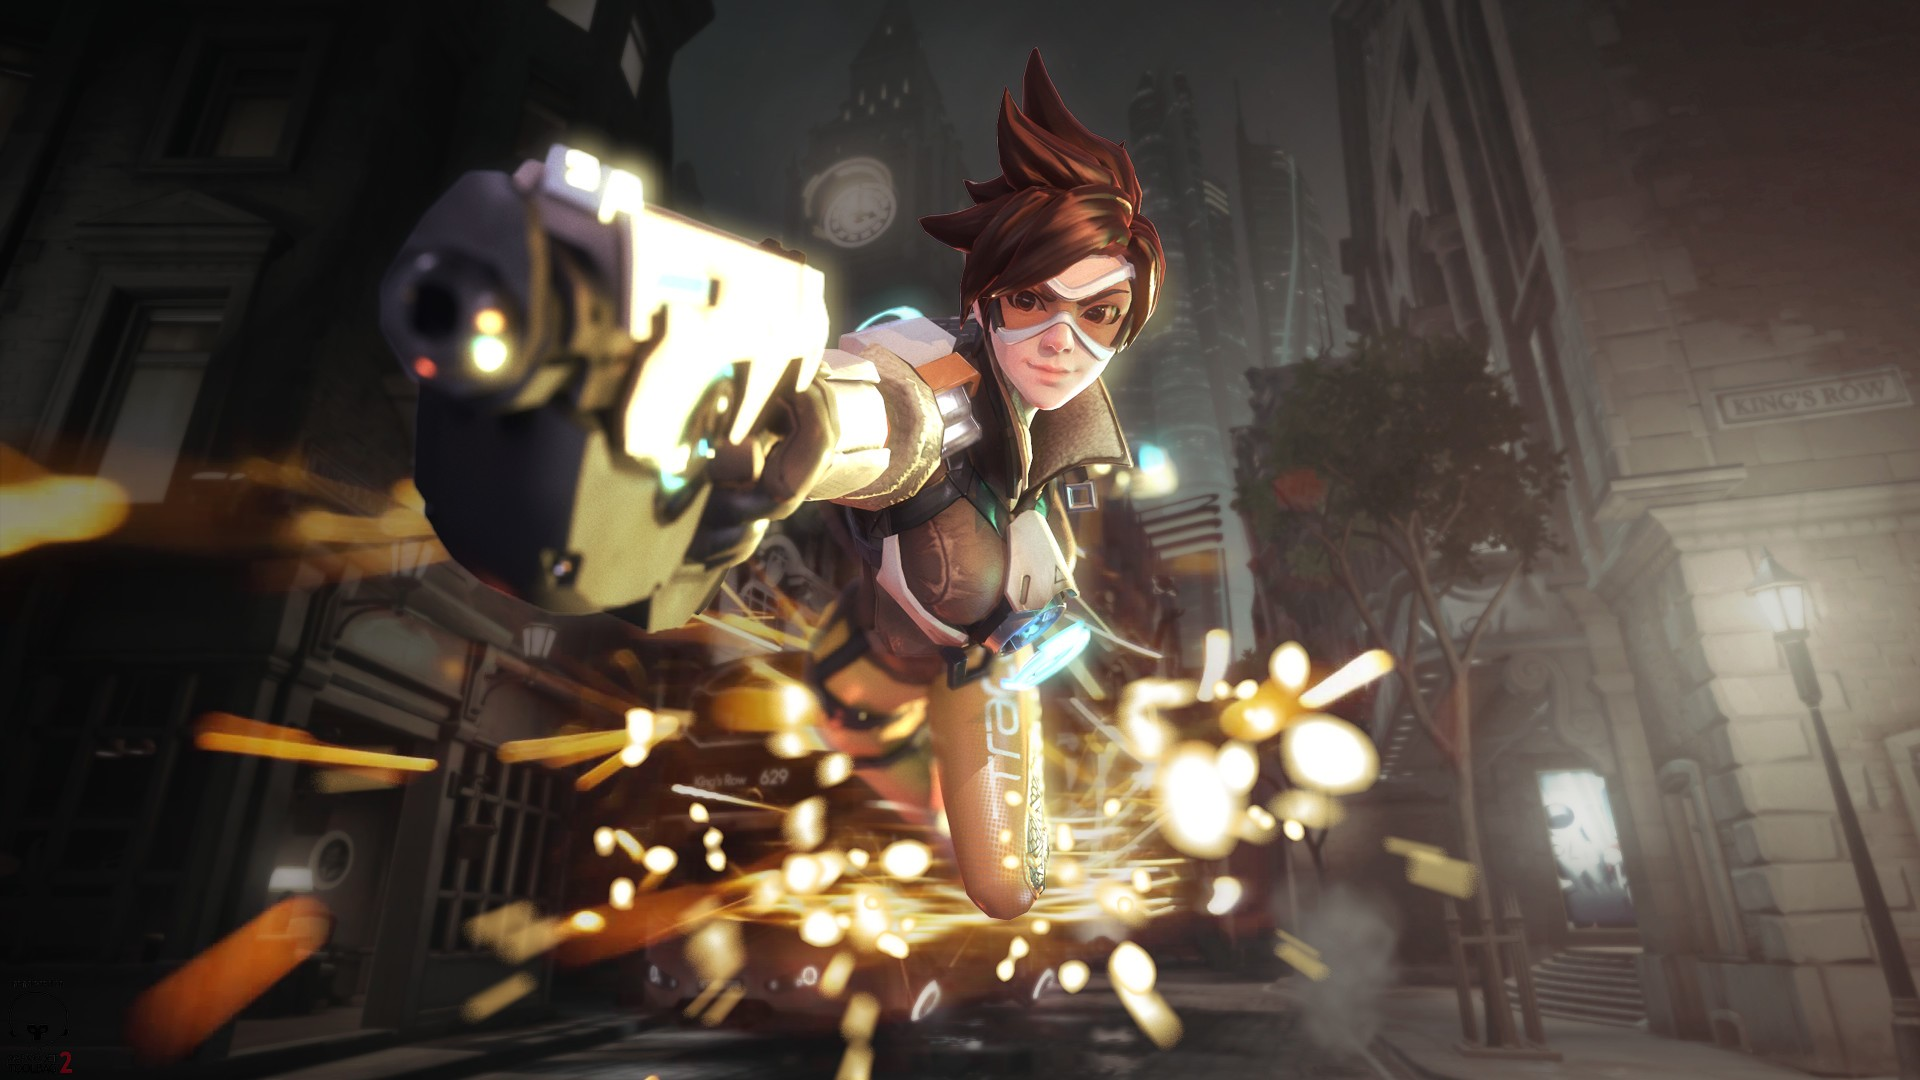 overwatch agent tracer wallpapers - photo #22